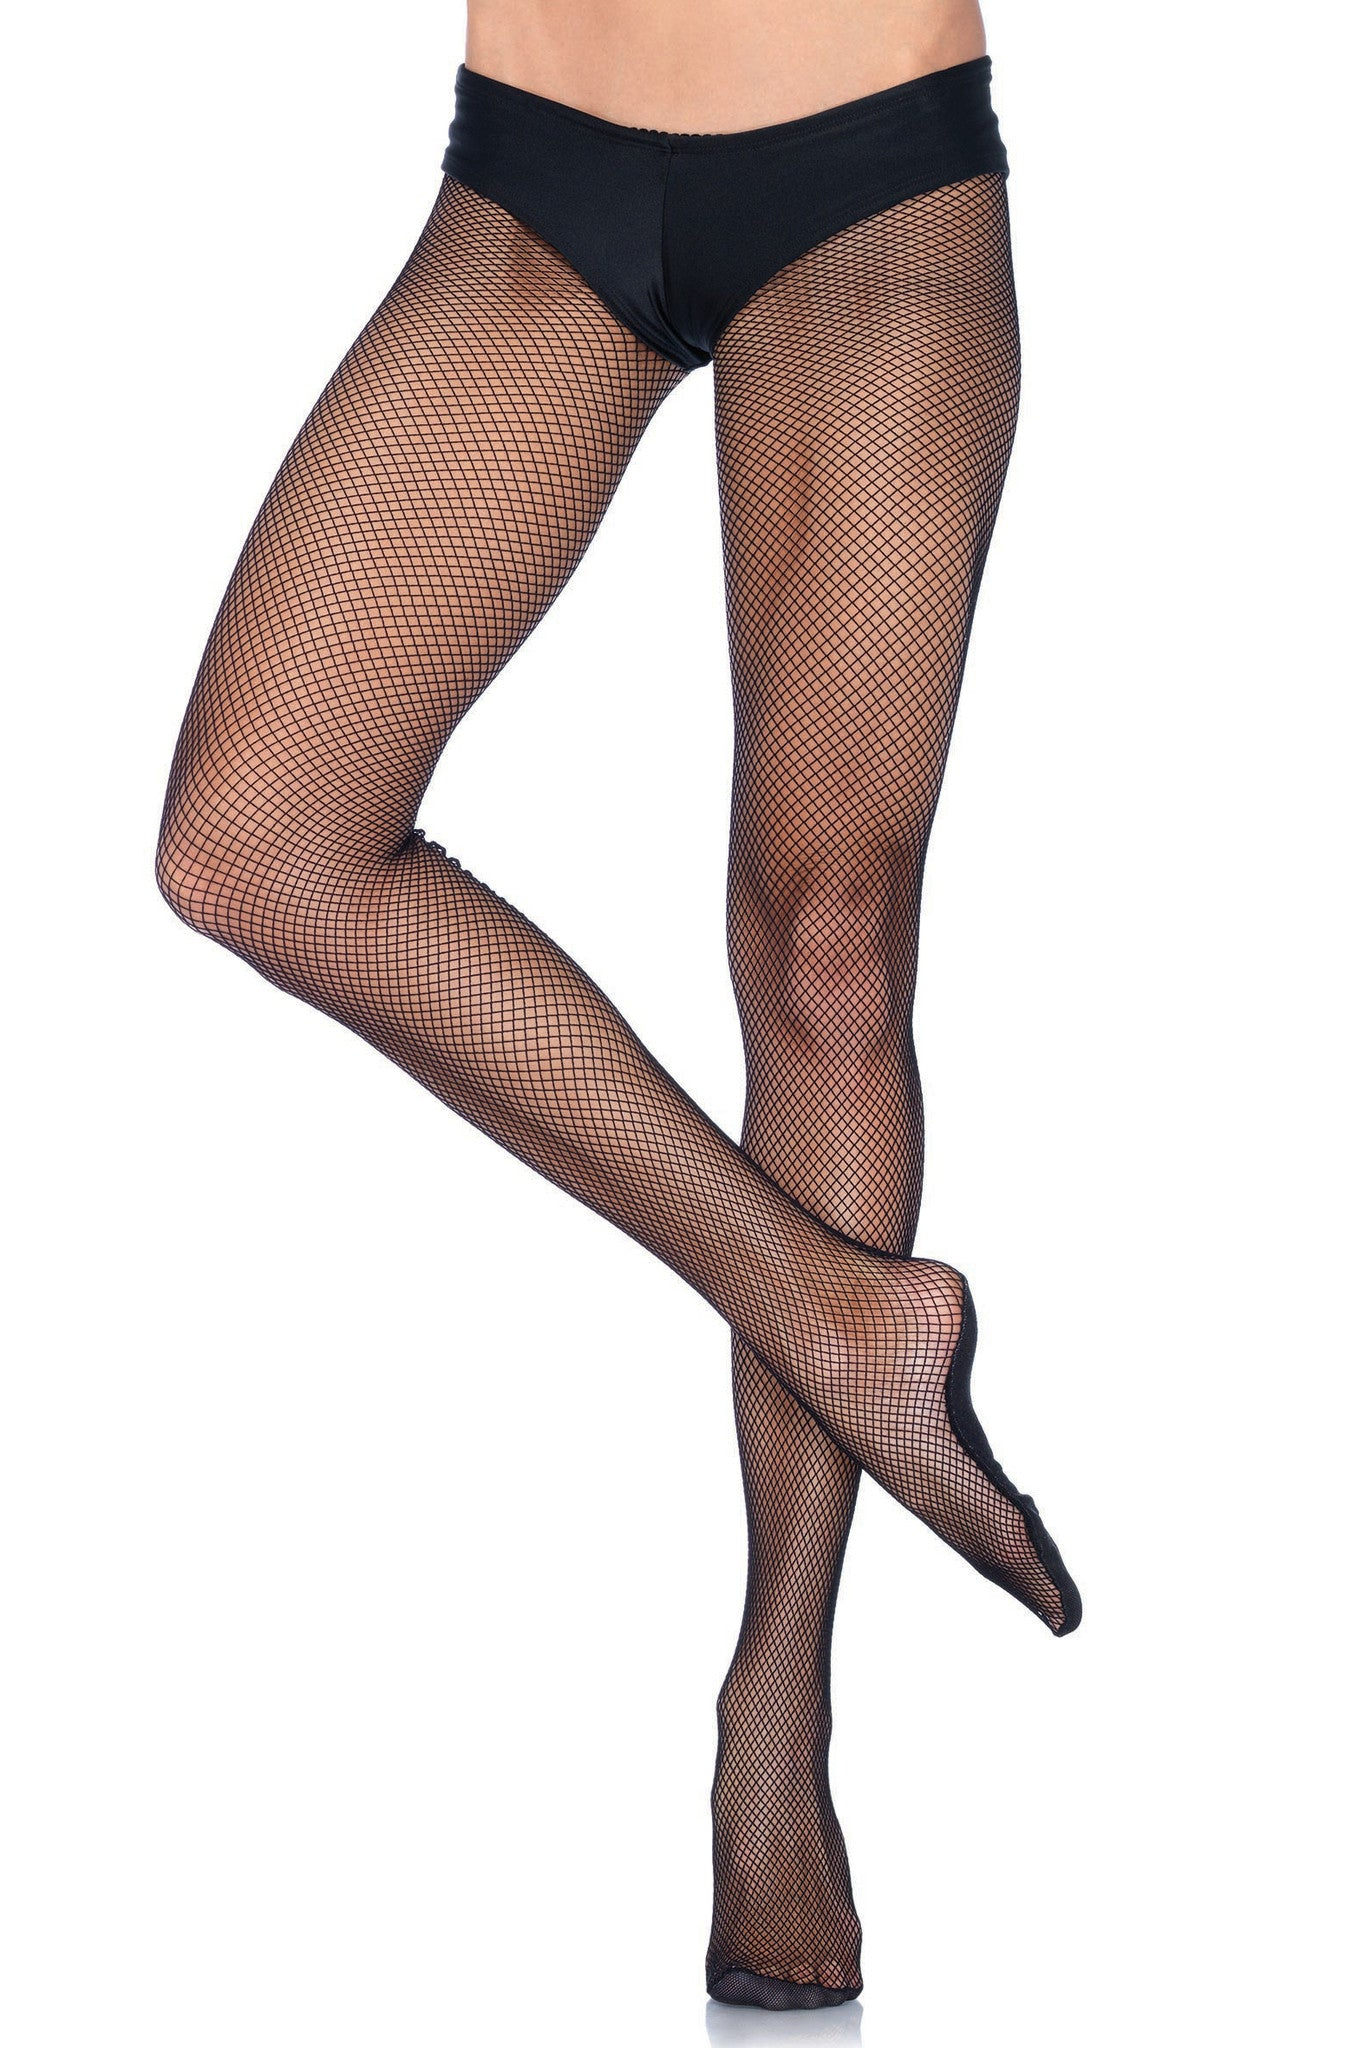 Professional Fishnet Dance Tights